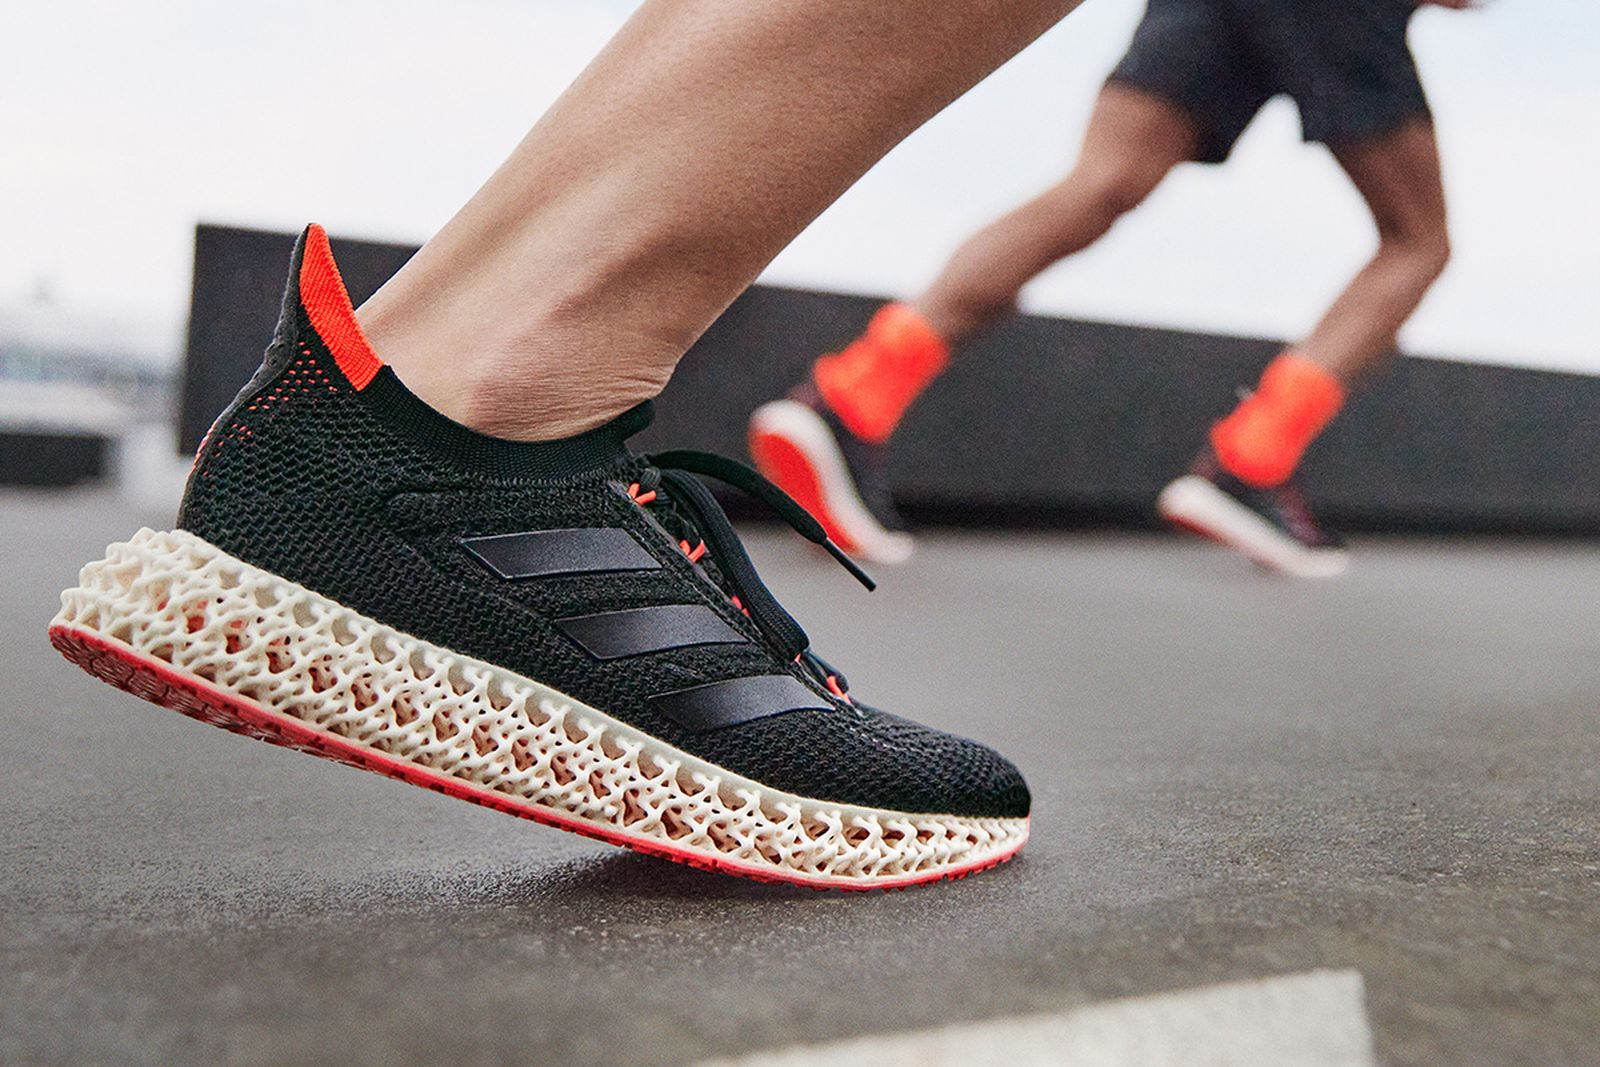 adidas 4D FWD Interview About the Design & Future of the Tech